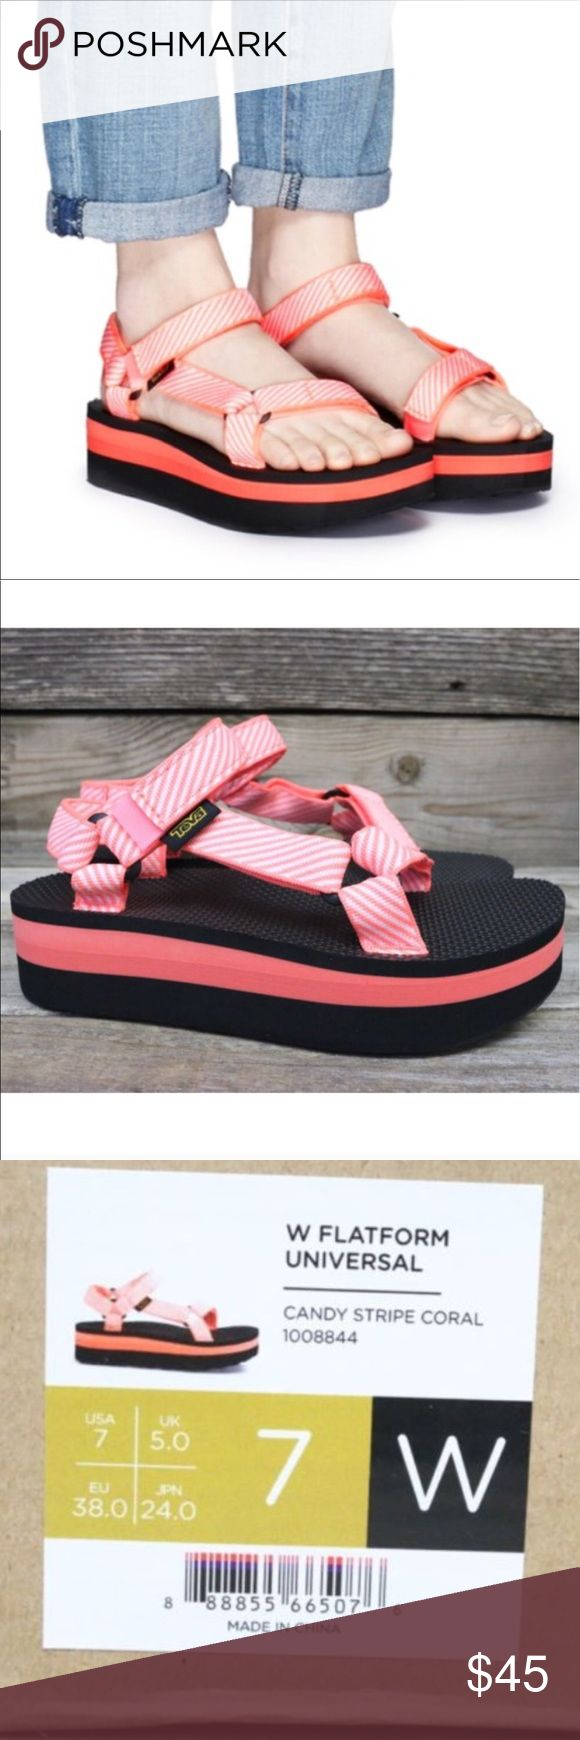 Teva Flatform Universal Candy Stripe Sandals 7 New and authentic  Teva Shoes Sandals